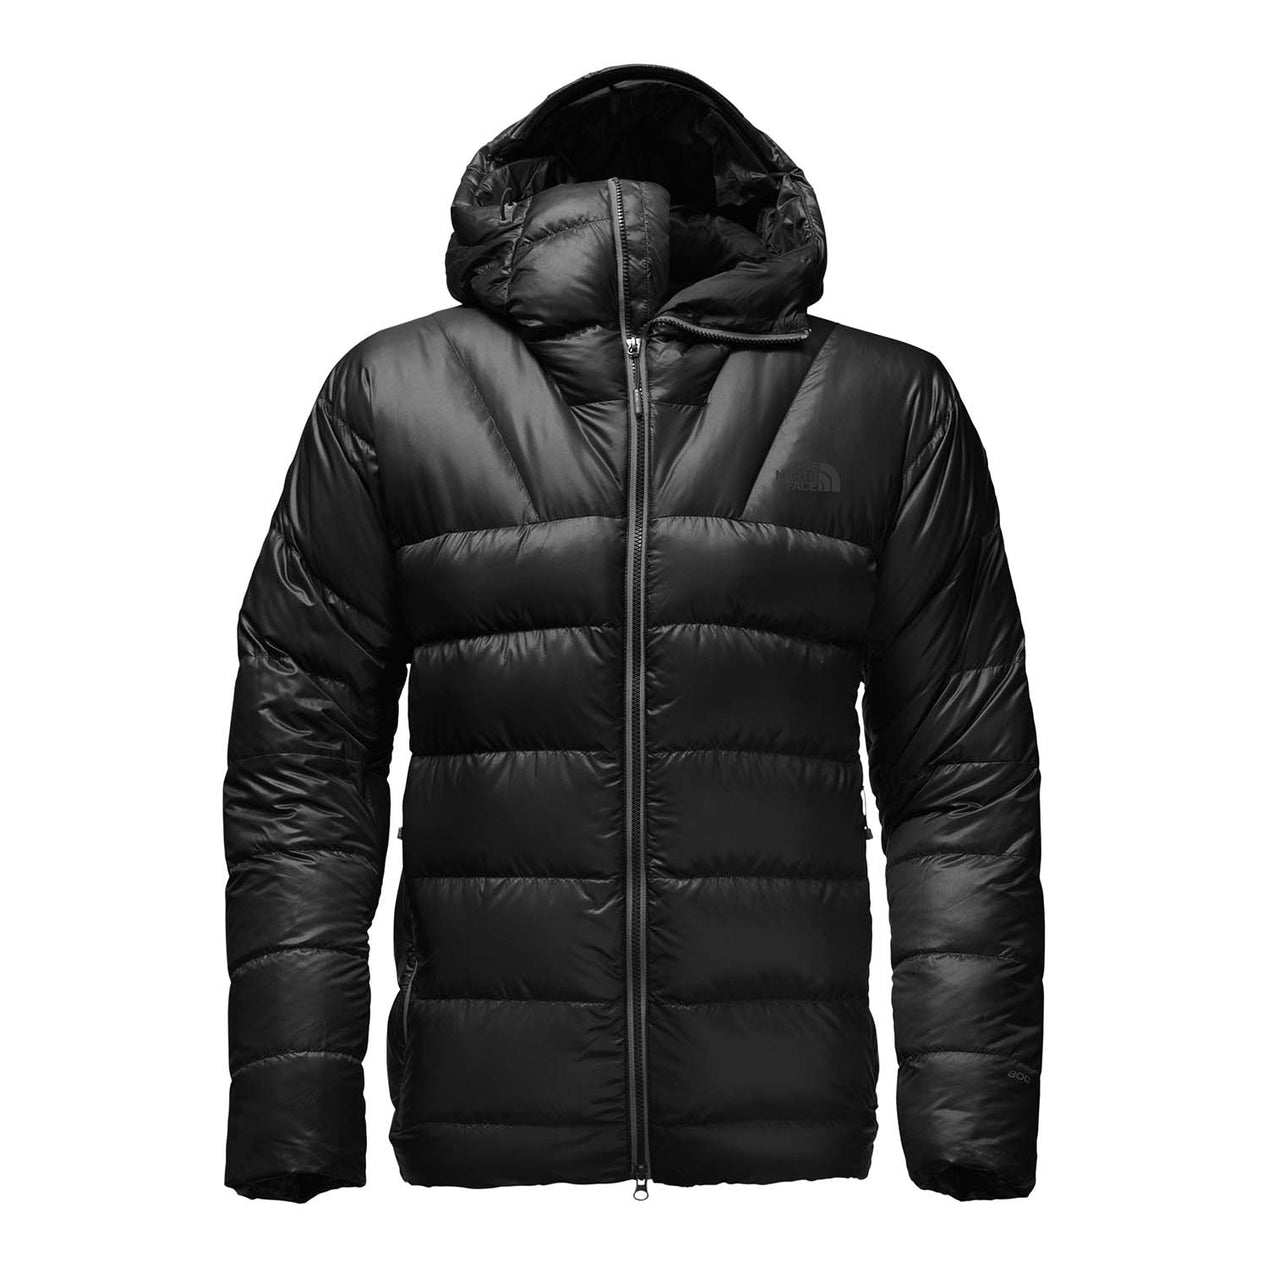 460305a39 The North Face Men's Immaculator Parka